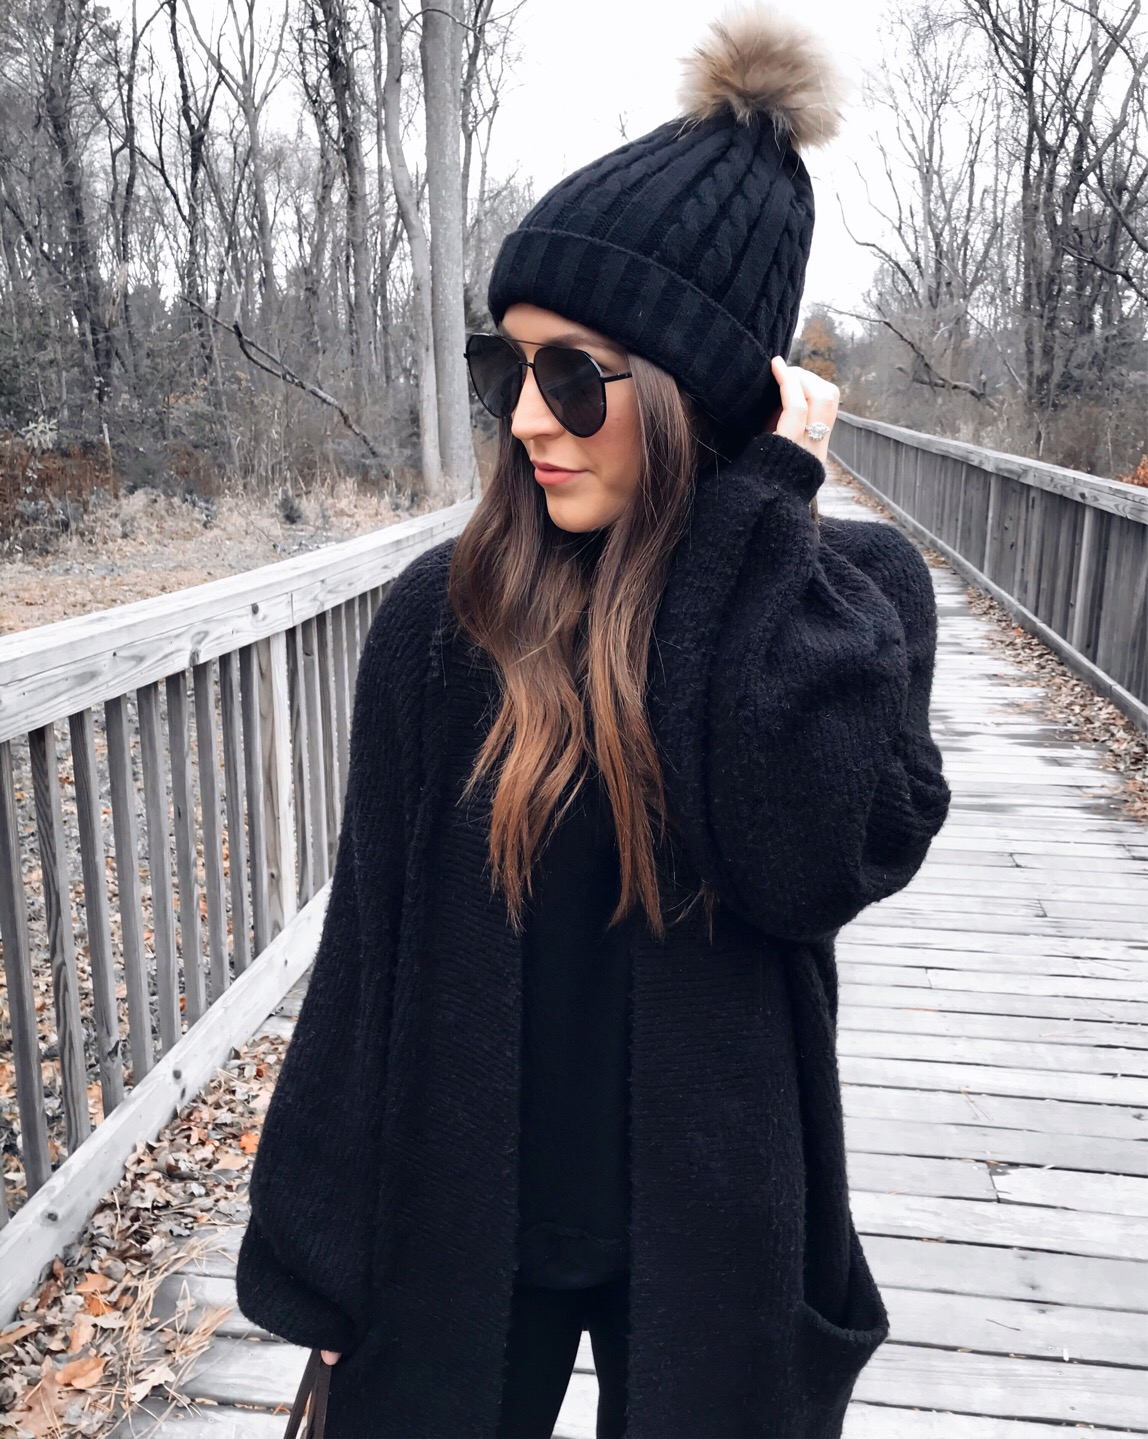 Weekend Sales & Instagram Round Up | Pine Barren Beauty | winter fashion, winter outfit idea, winter essentials, all black outfit idea, outfit of the day, black beanie, cozy cardigan